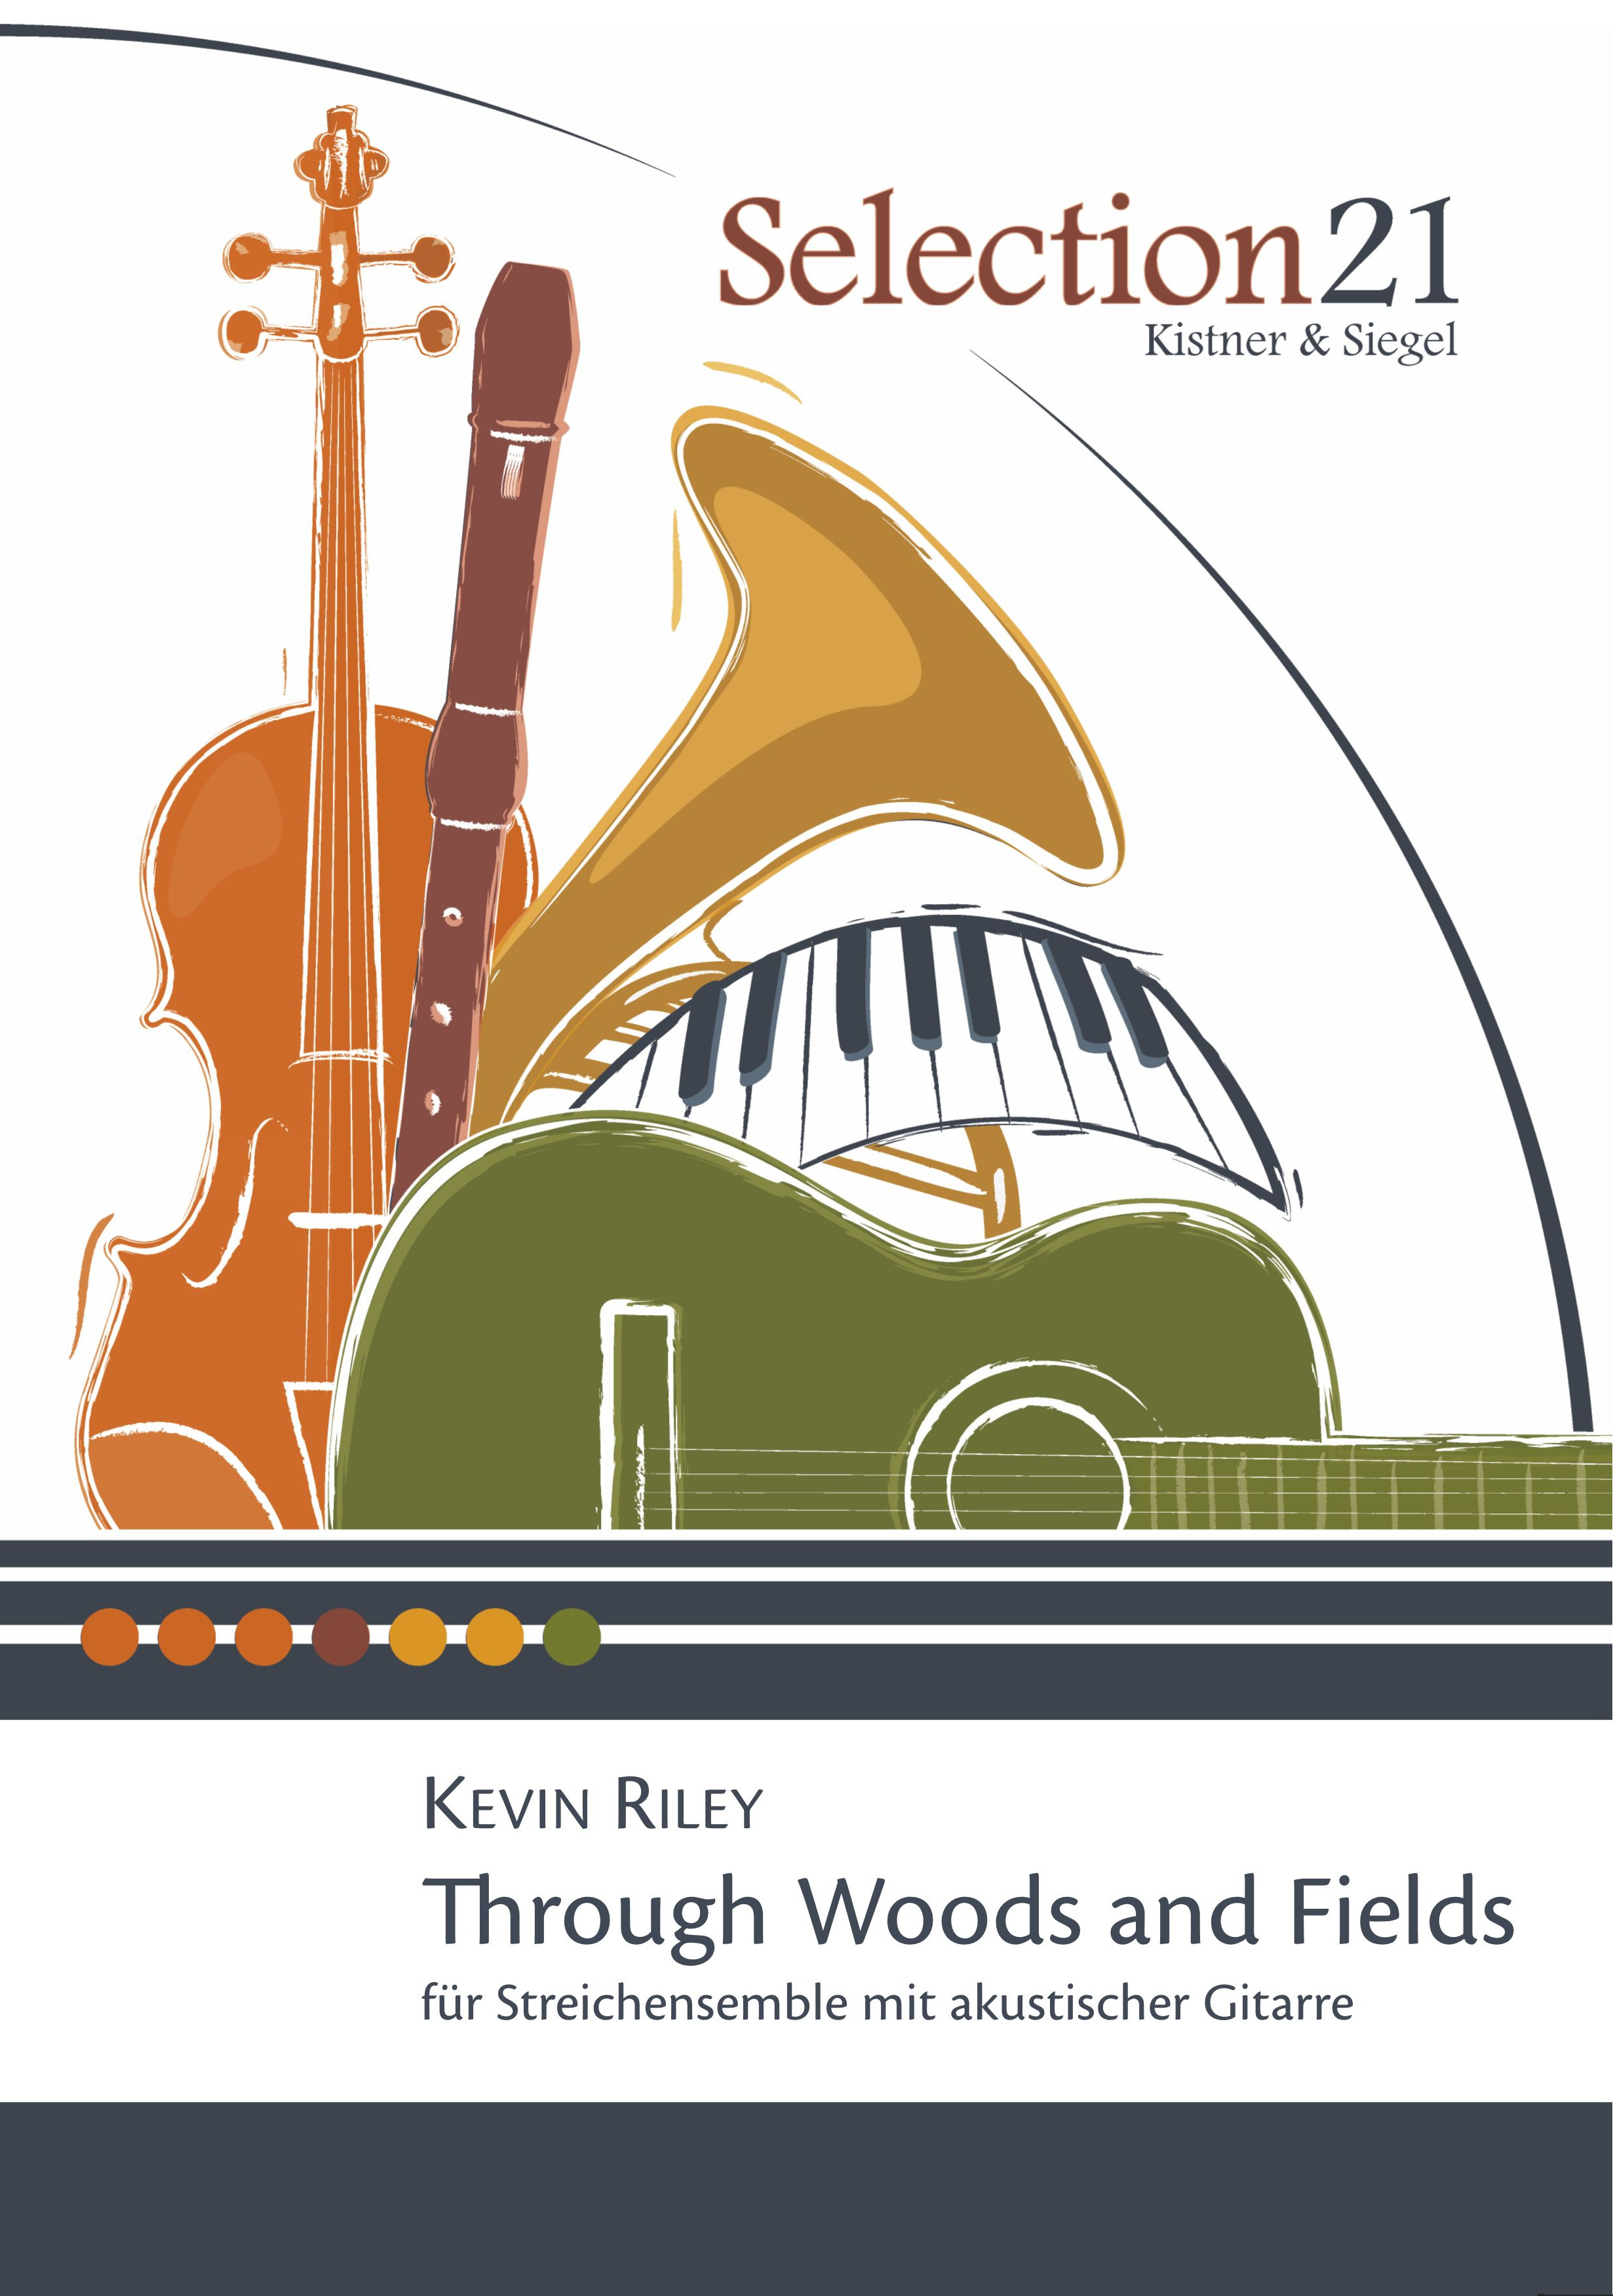 Through Woods and Fields Kevin Riley